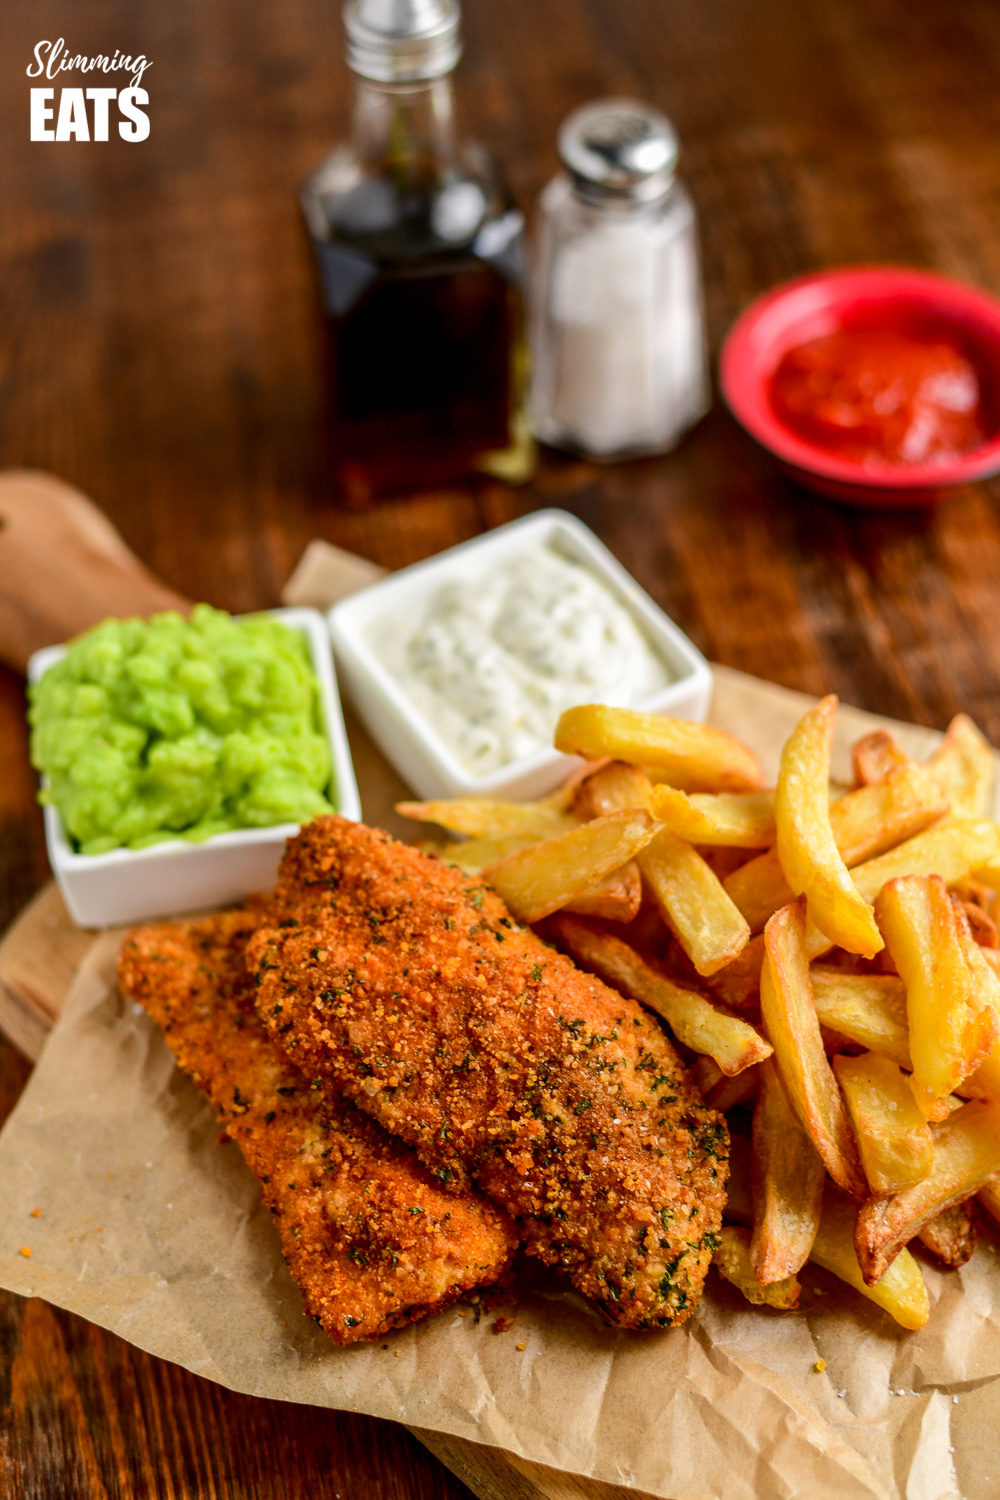 actifry fish and chips on crinkled parchment with mushy peas and tartare sauce in small white square dishes